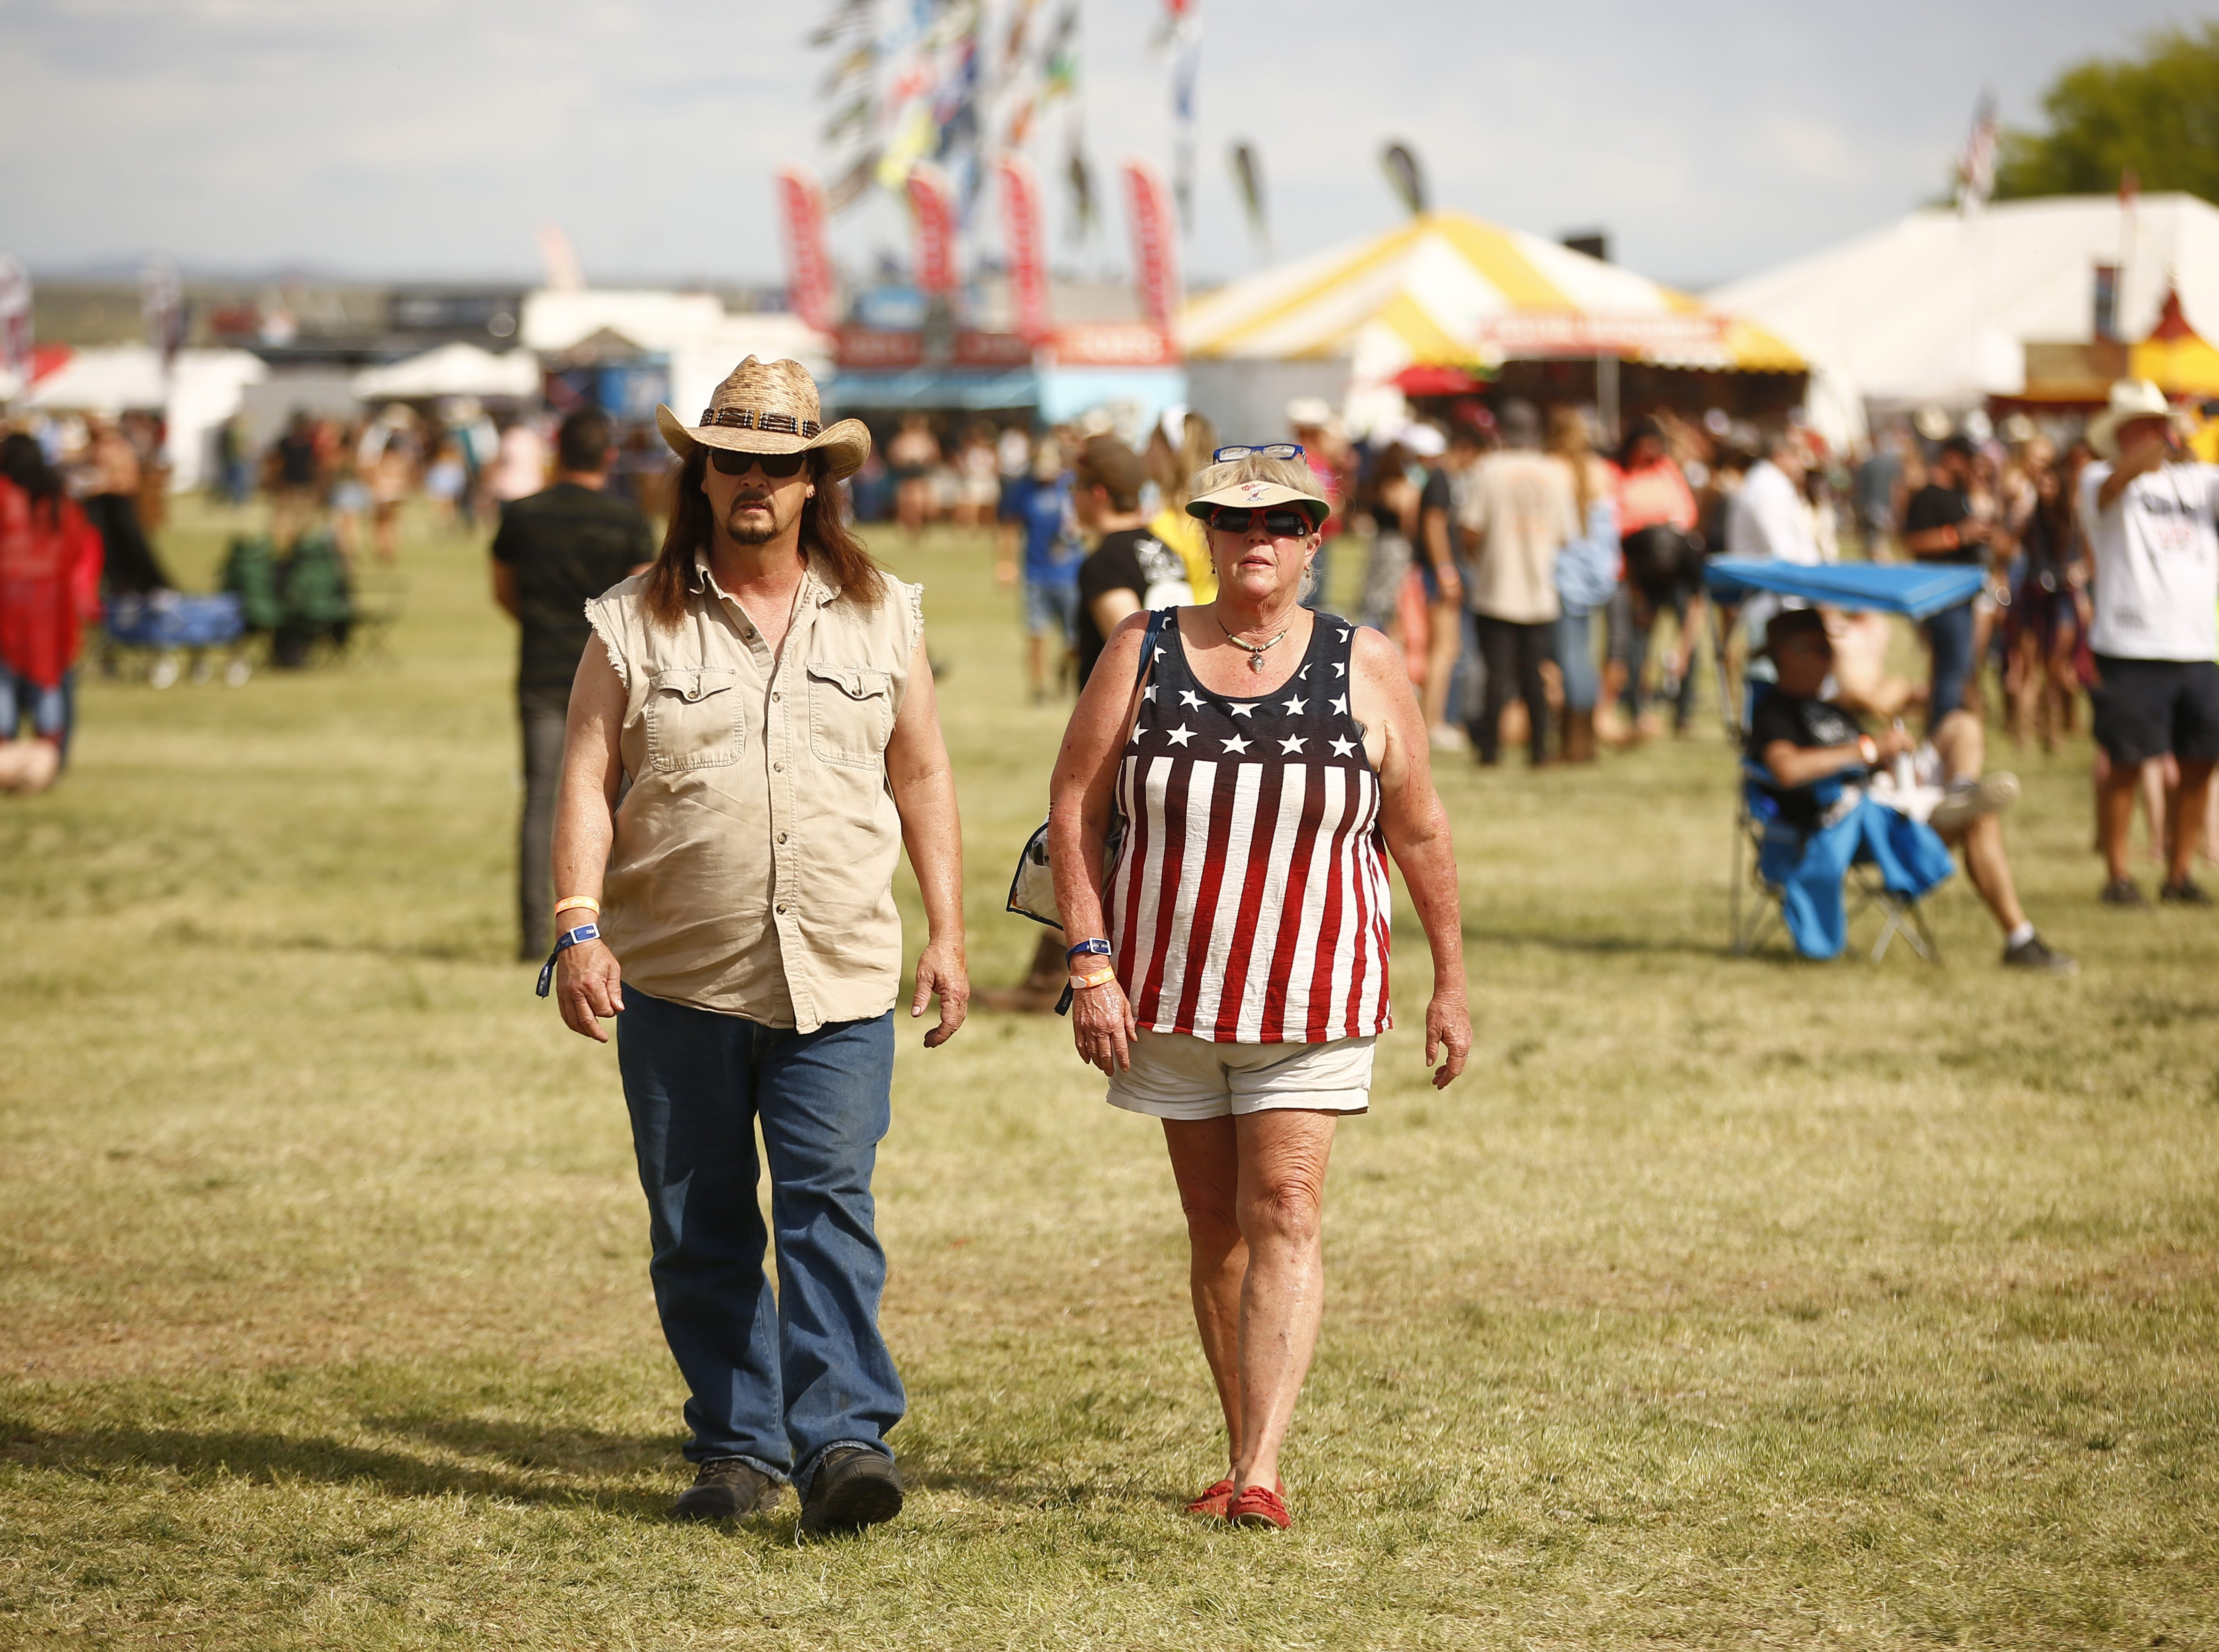 Fans make their way toward the main stage during Country Thunder in Florence, Ariz., on Friday, April 12, 2019.